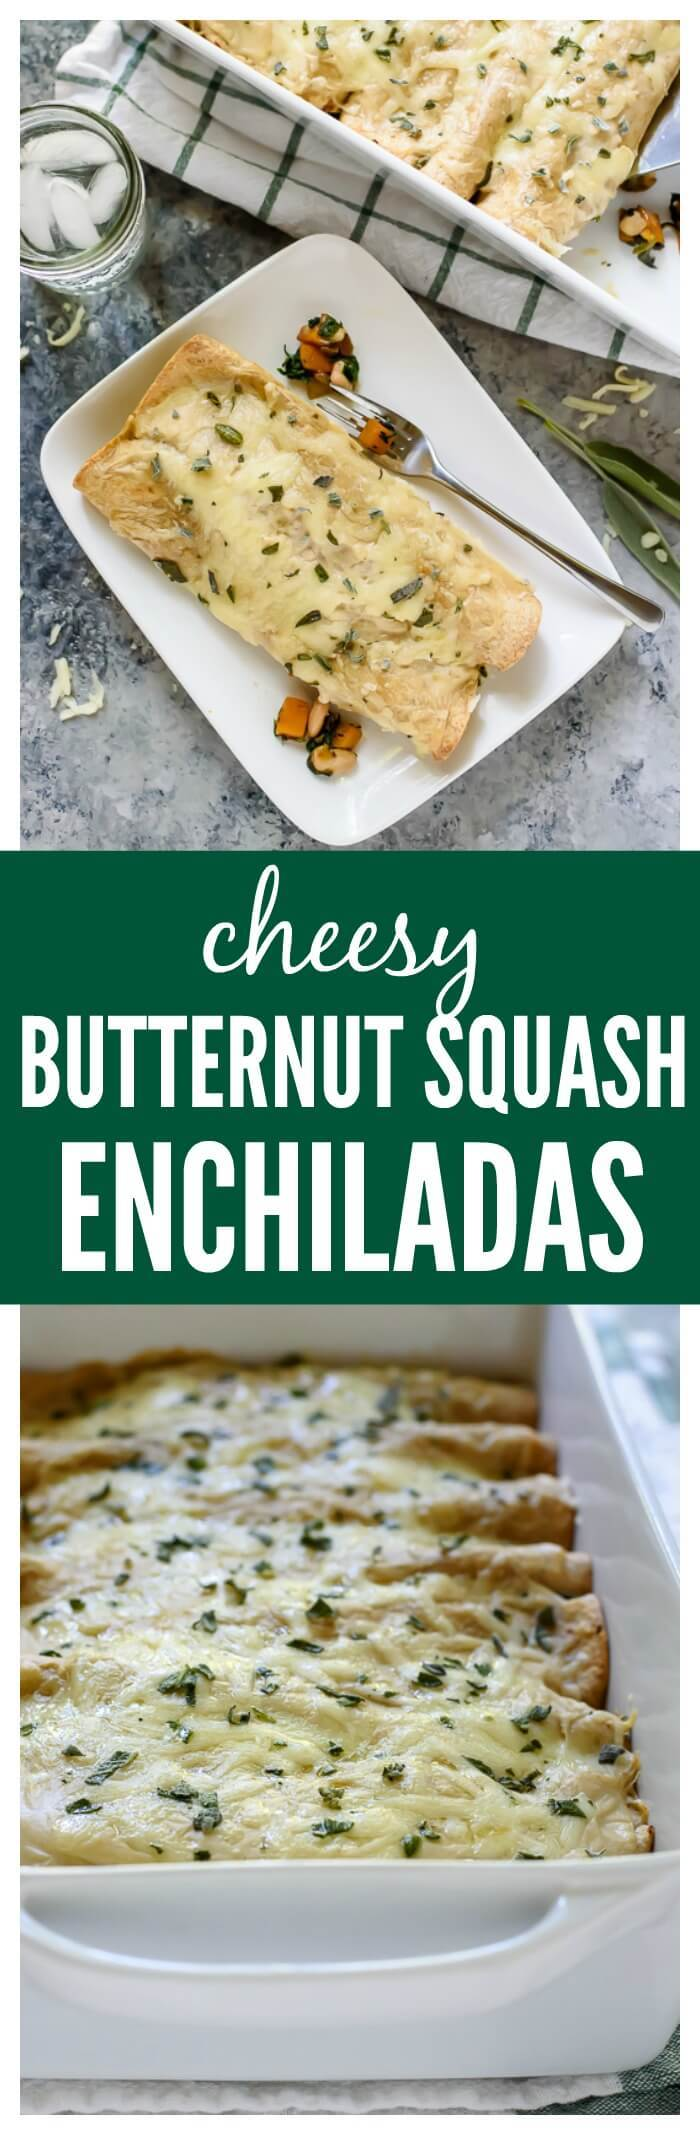 Cheesy Butternut Squash Enchiladas with Spinach and White Beans. AMAZING flavor, healthy, and freezer friendly!